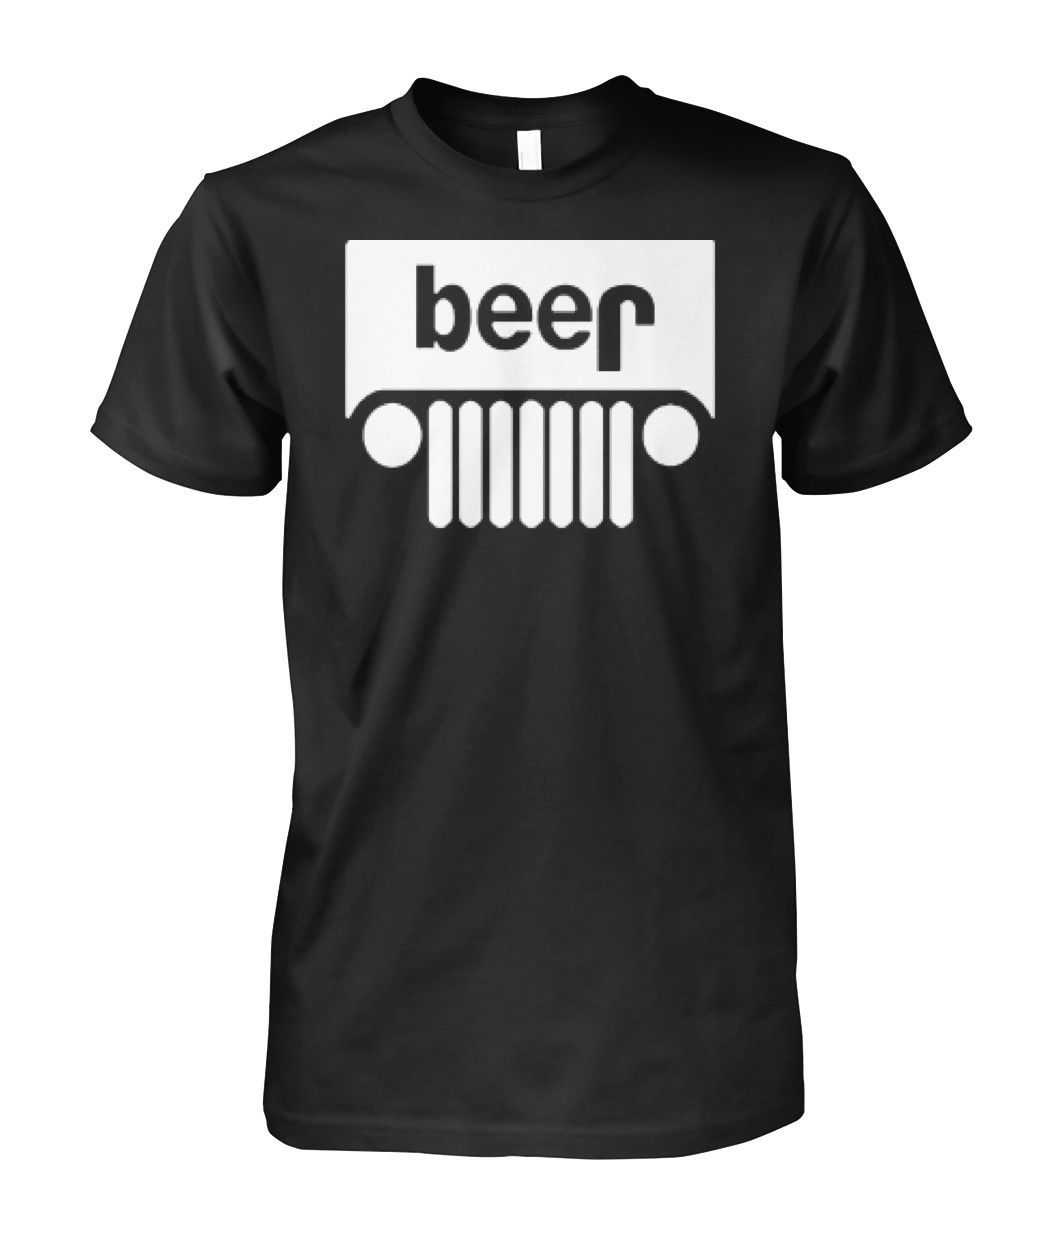 Beer Jeep T Shirt Jeep Shirts Beer Shirt Design Mens Tshirts